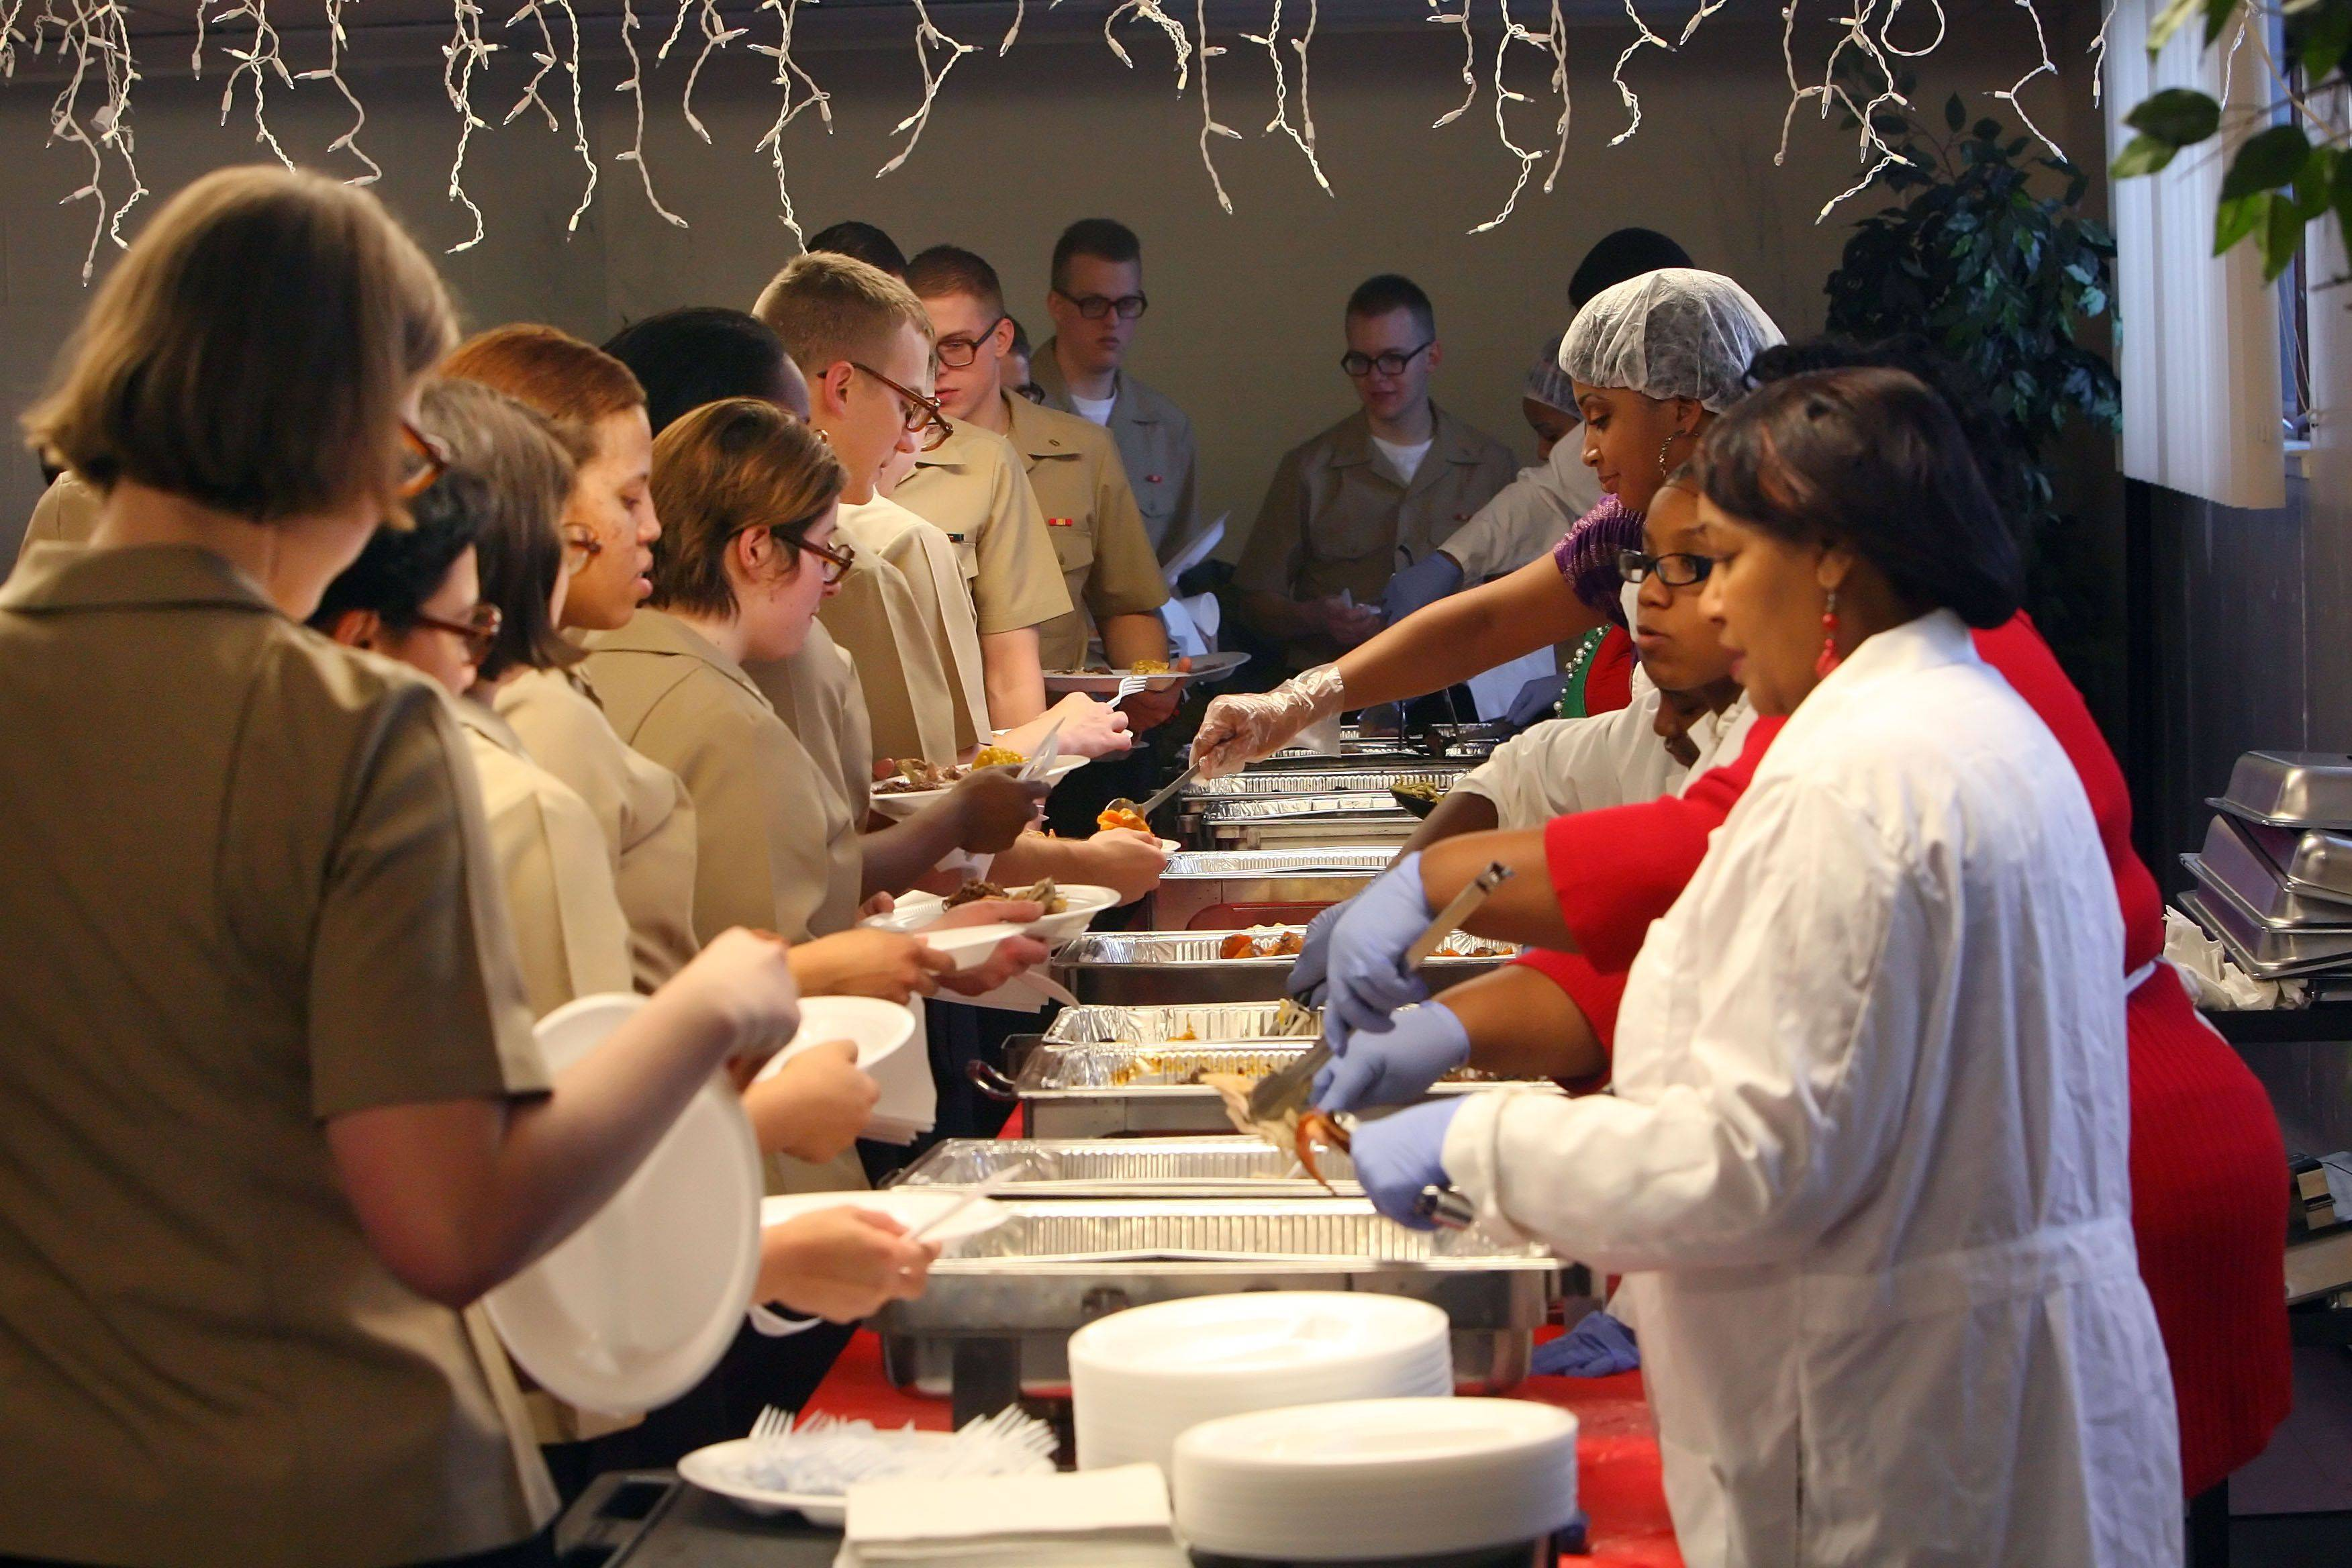 North Chicago church makes day merry for Navy recruits